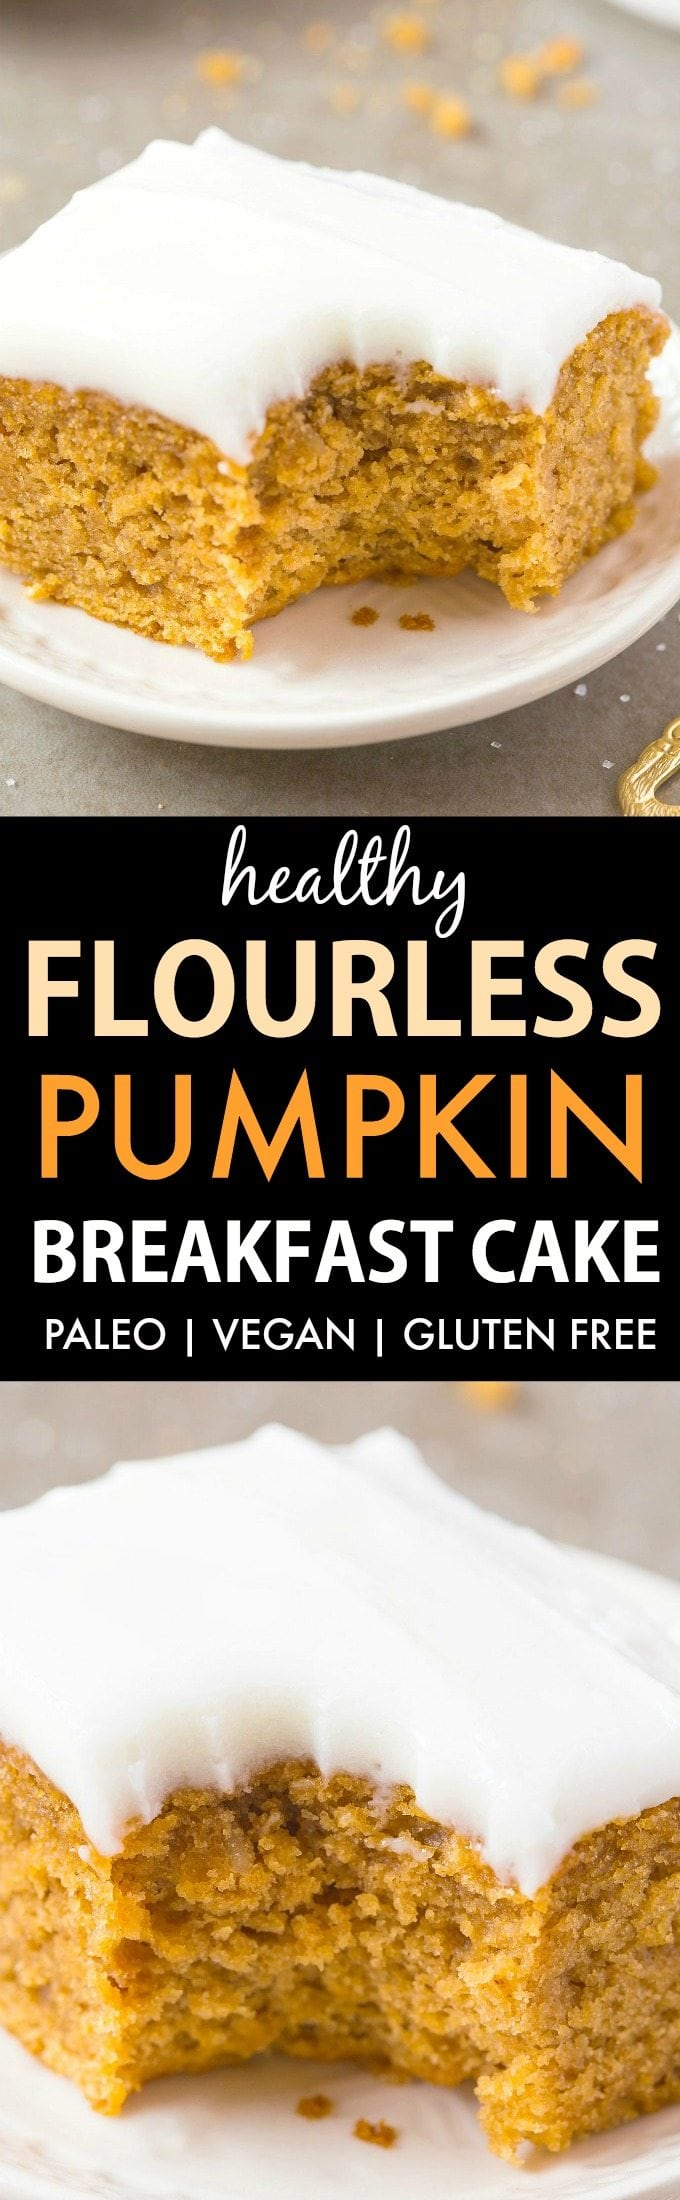 Healthy Flourless Pumpkin Breakfast Cake (V, GF, P, DF)- An easy, one bowl flourless pumpkin breakfast cake recipe- Moist and fluffy with a tender exterior- Topped with a healthy frosting! {vegan, gluten free, paleo recipe}- thebigmansworld.com #pumpkin #healthyrecipe